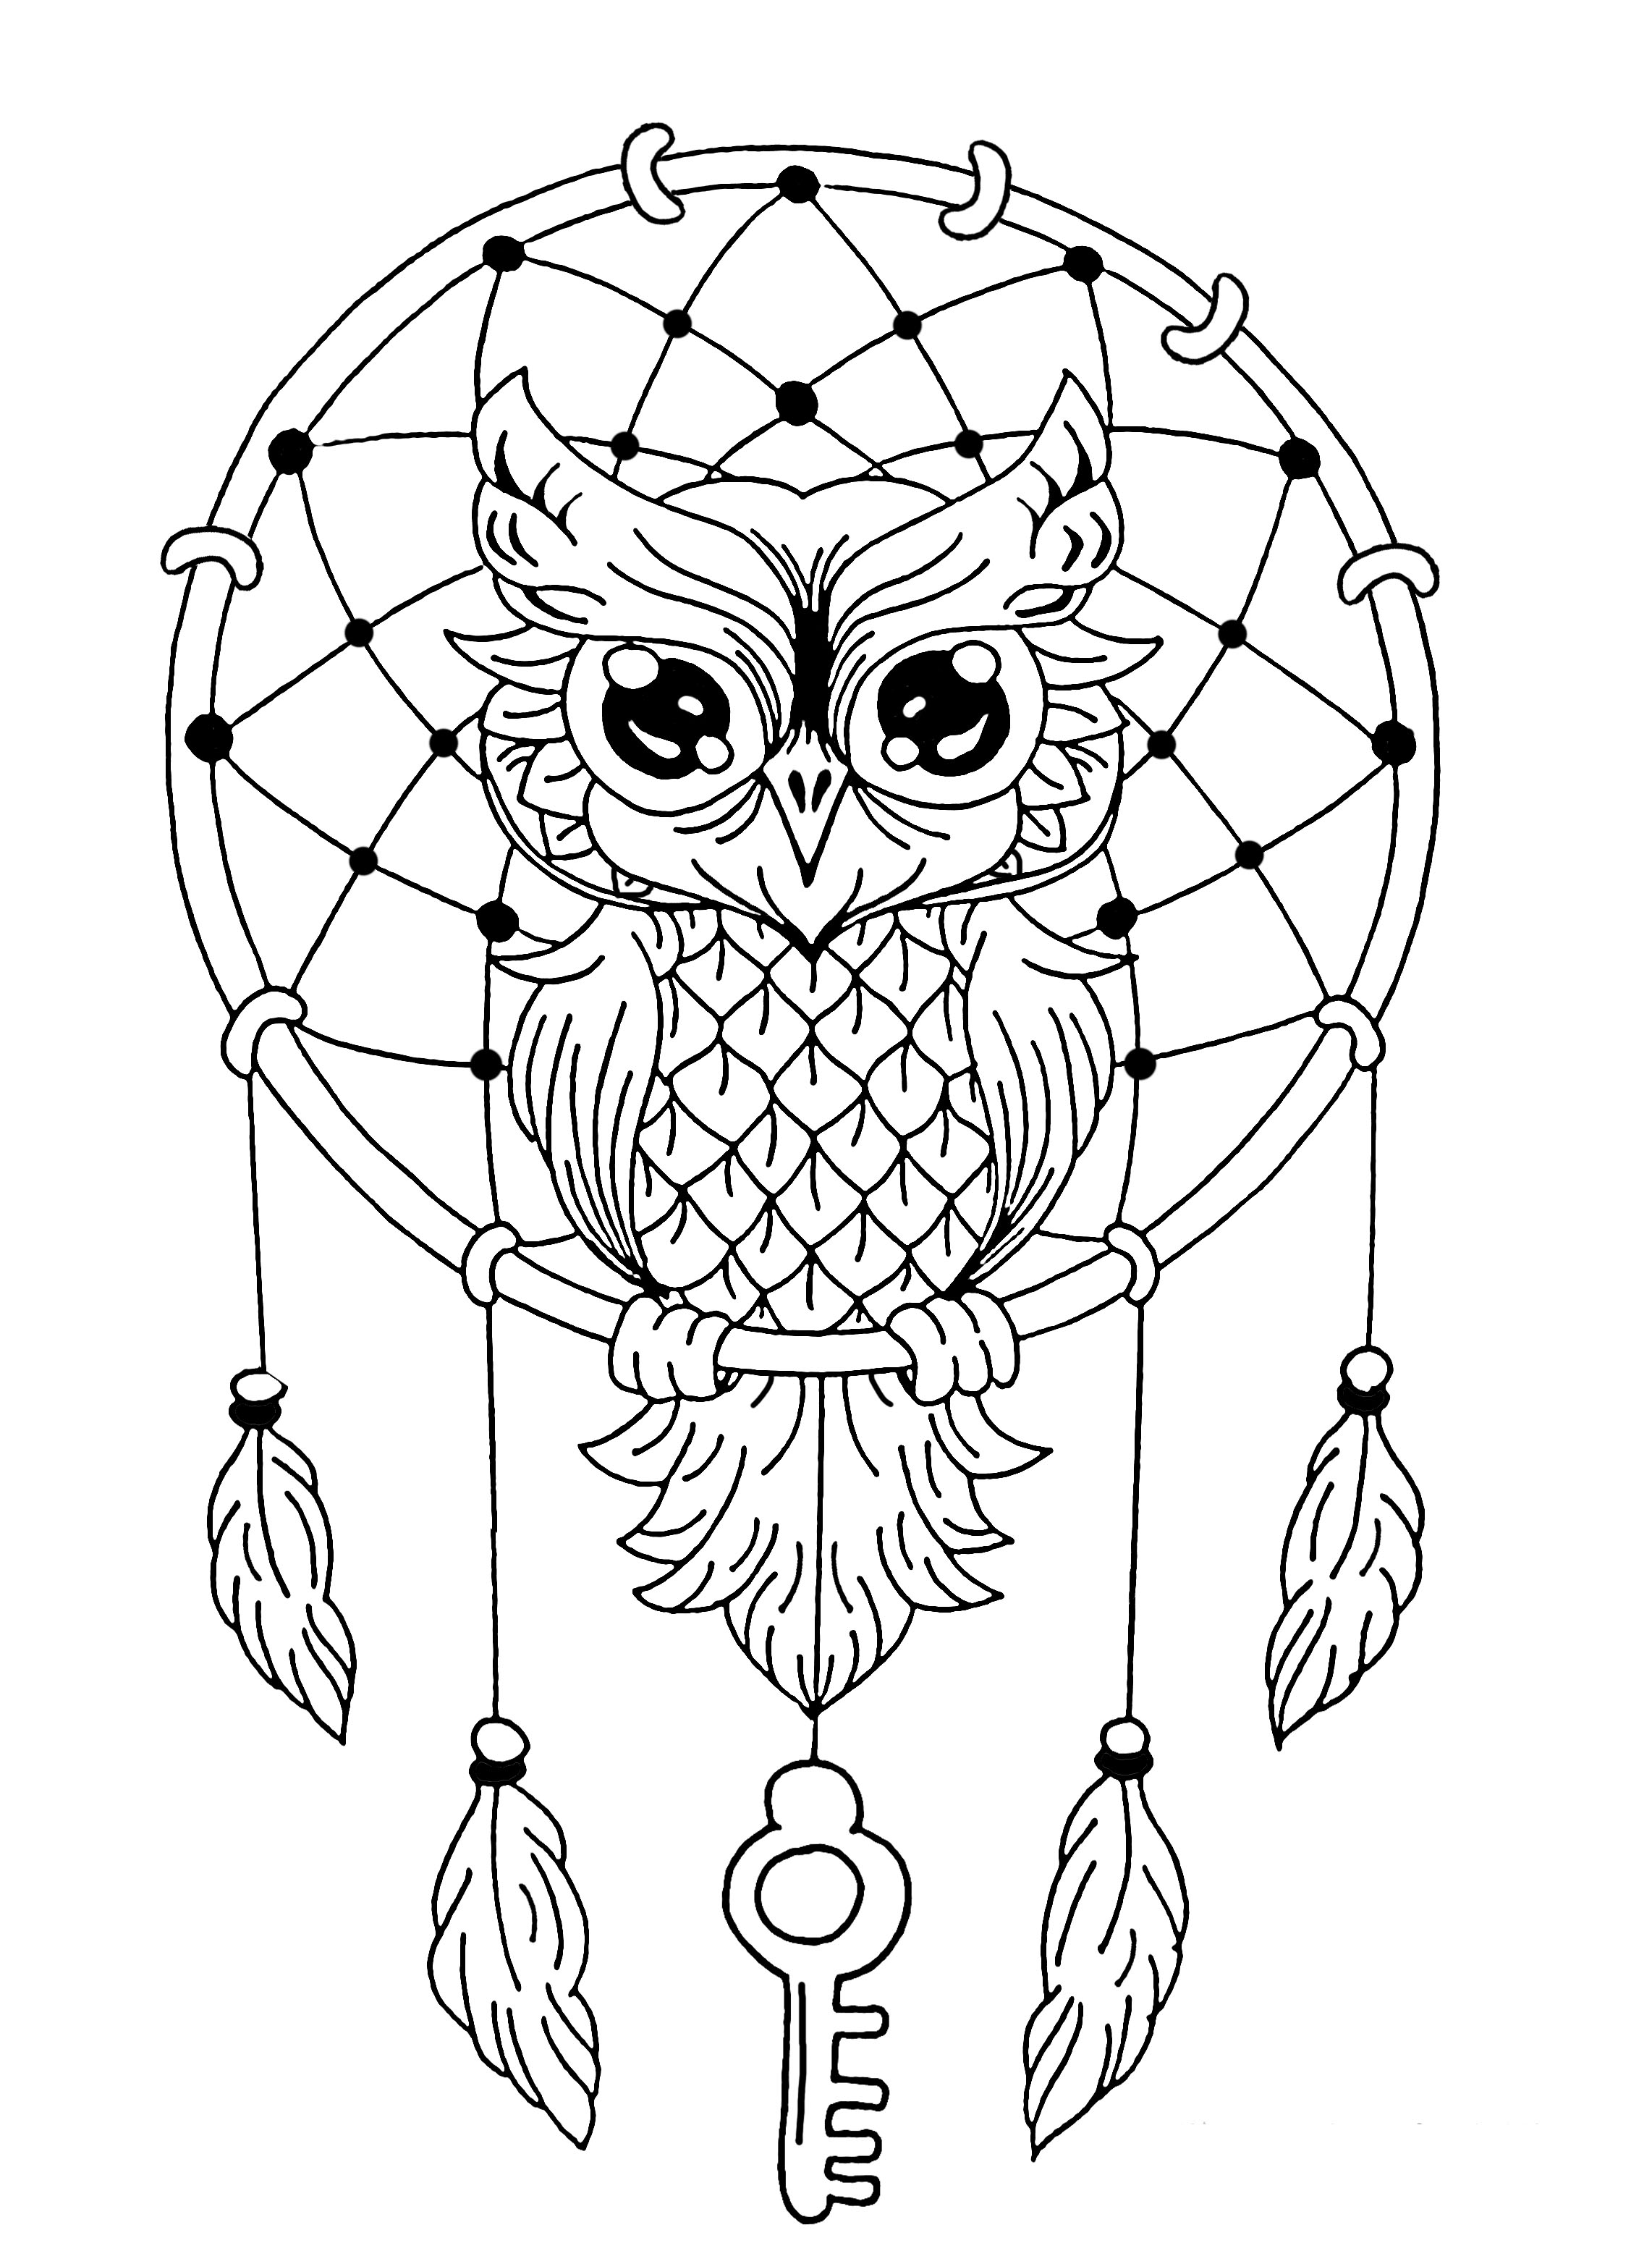 Owl dreamcatcher - Owls Adult Coloring Pages